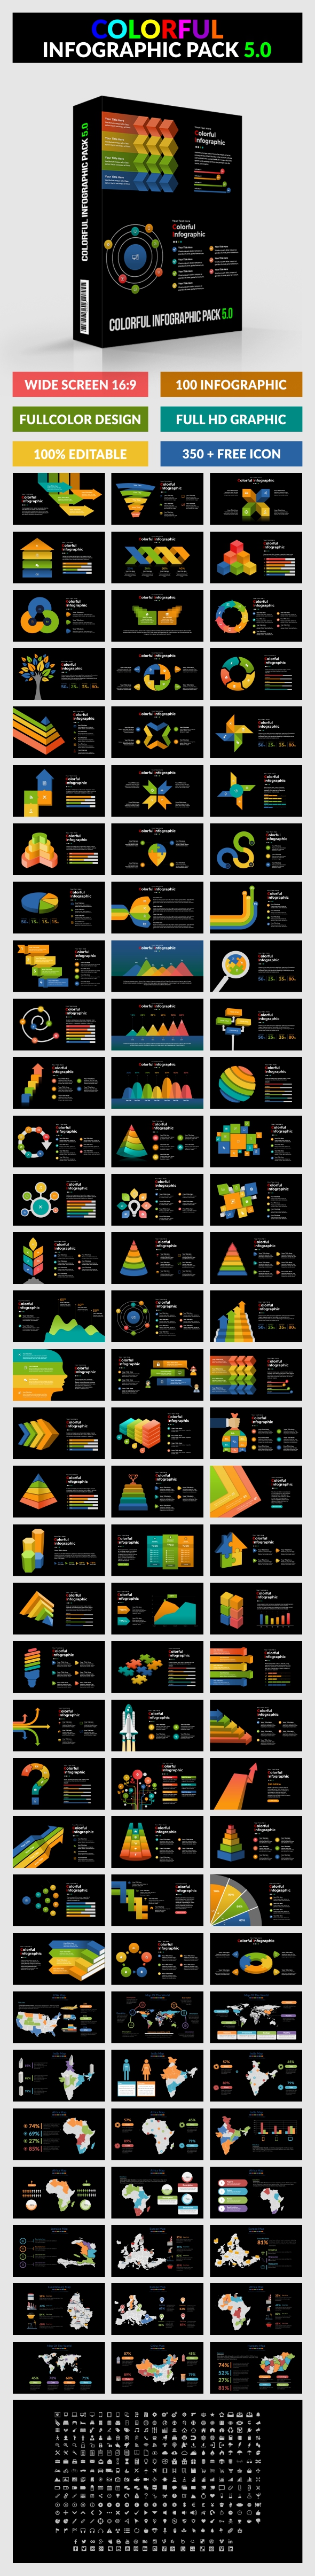 Colorful Infographic Pack 5.0 - PowerPoint - PowerPoint Templates Presentation Templates